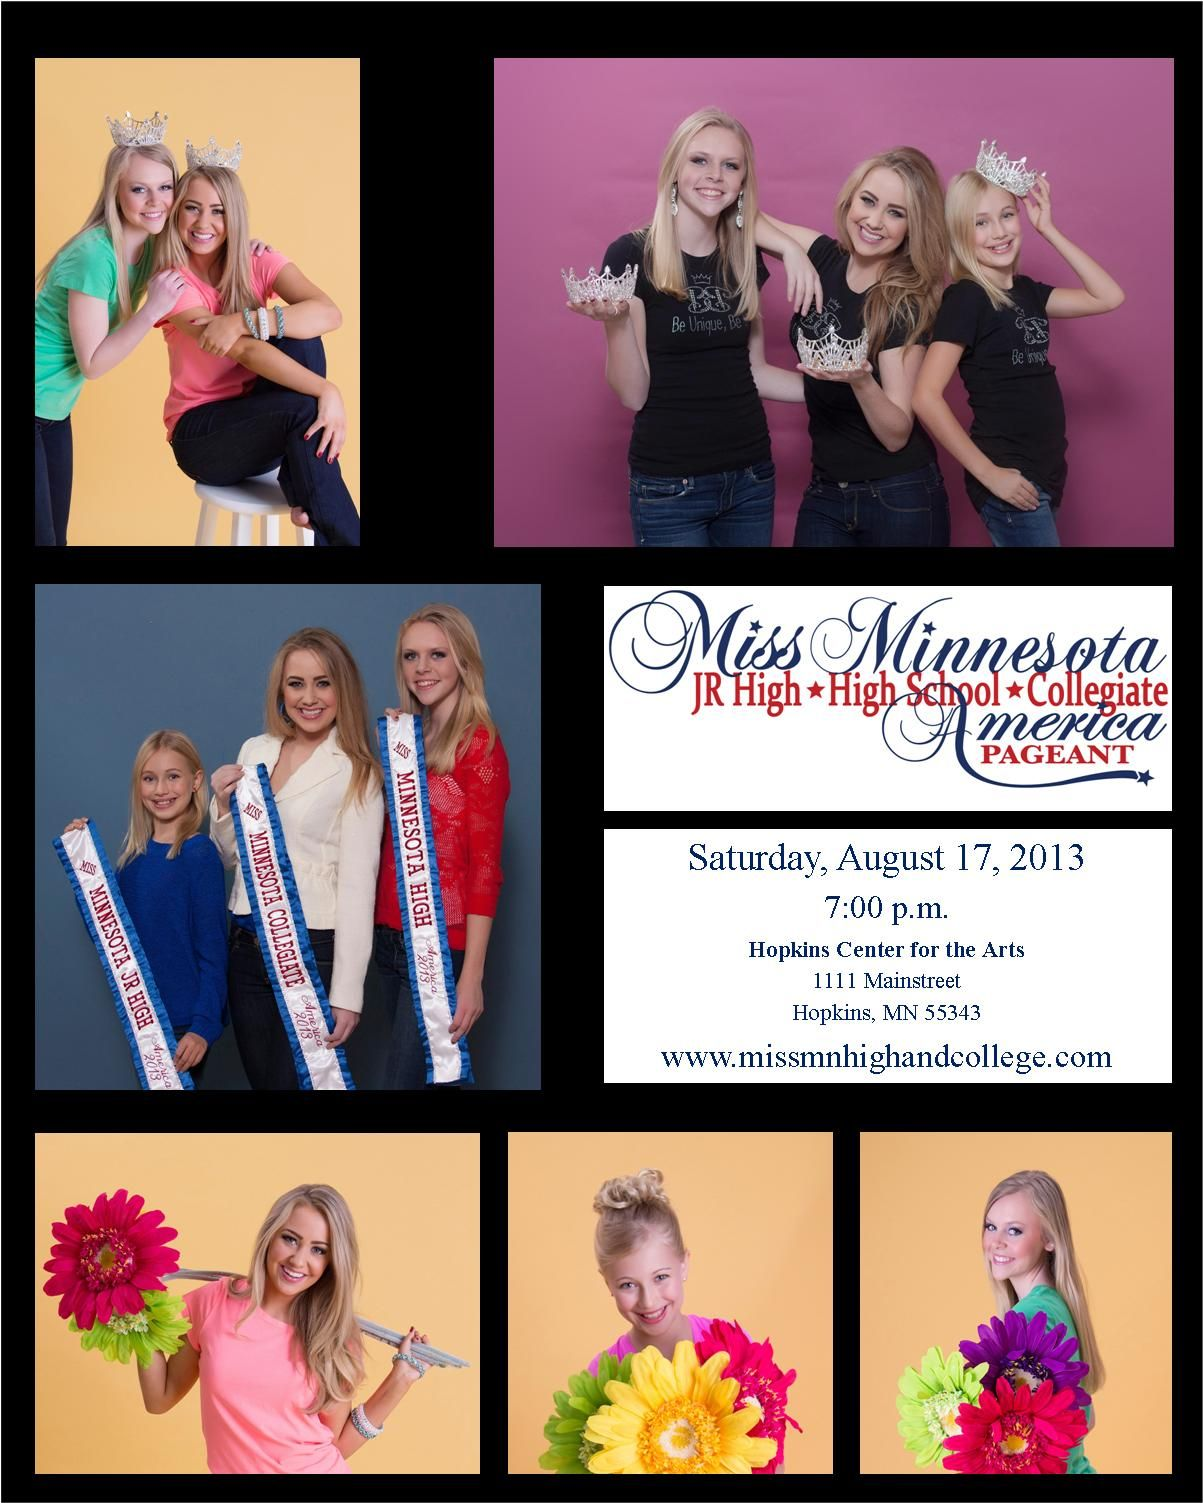 pageant beauty crown Minnesota Collegiate High